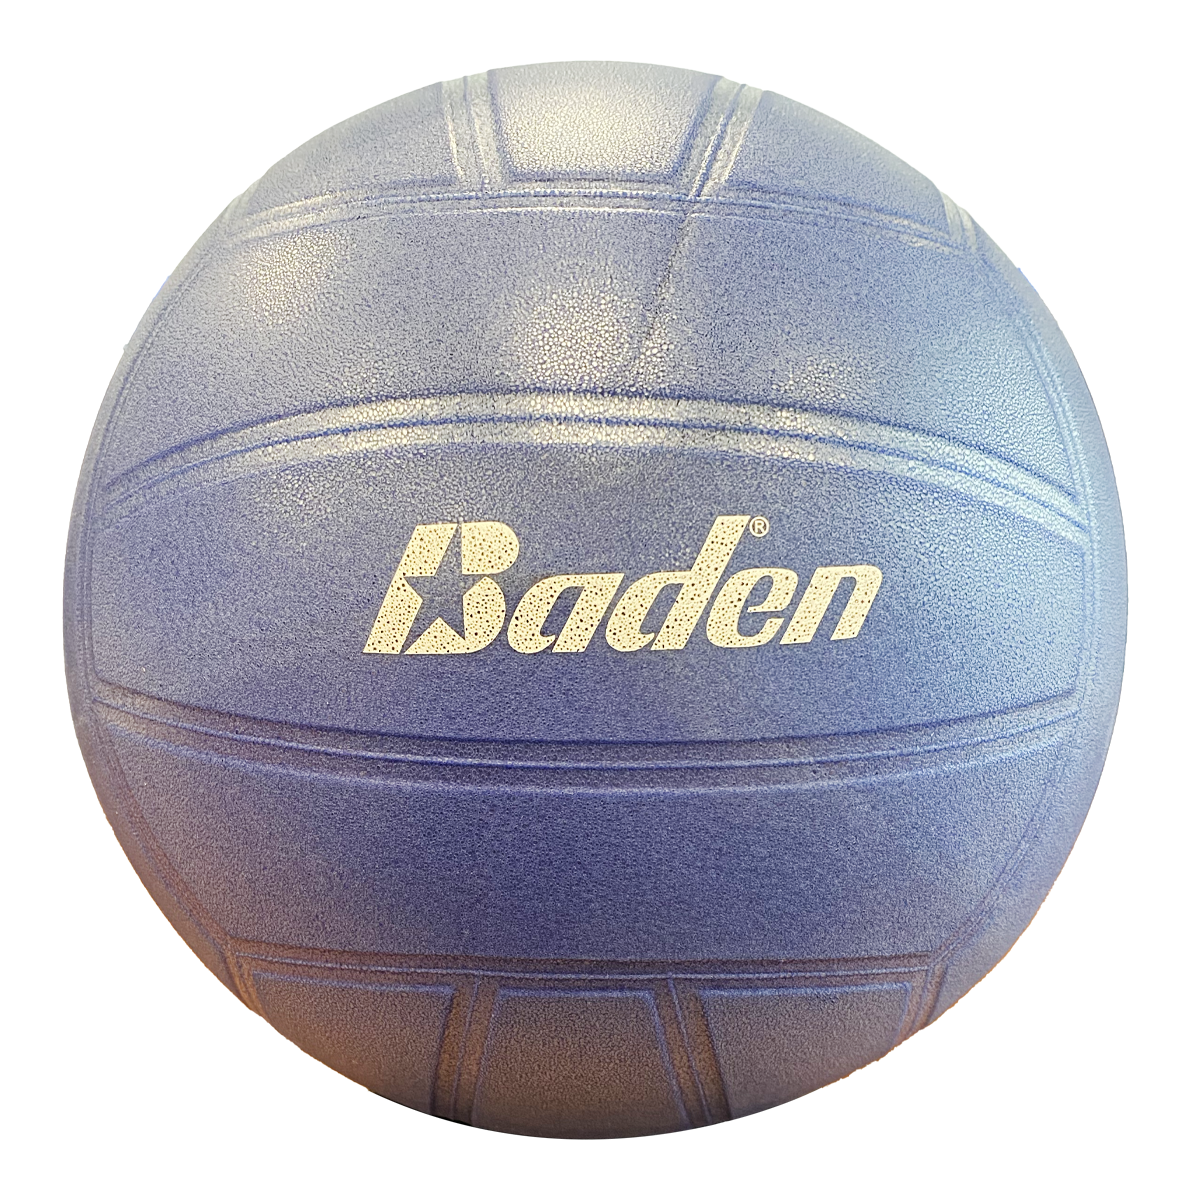 Super soft foamed PVC volleyball